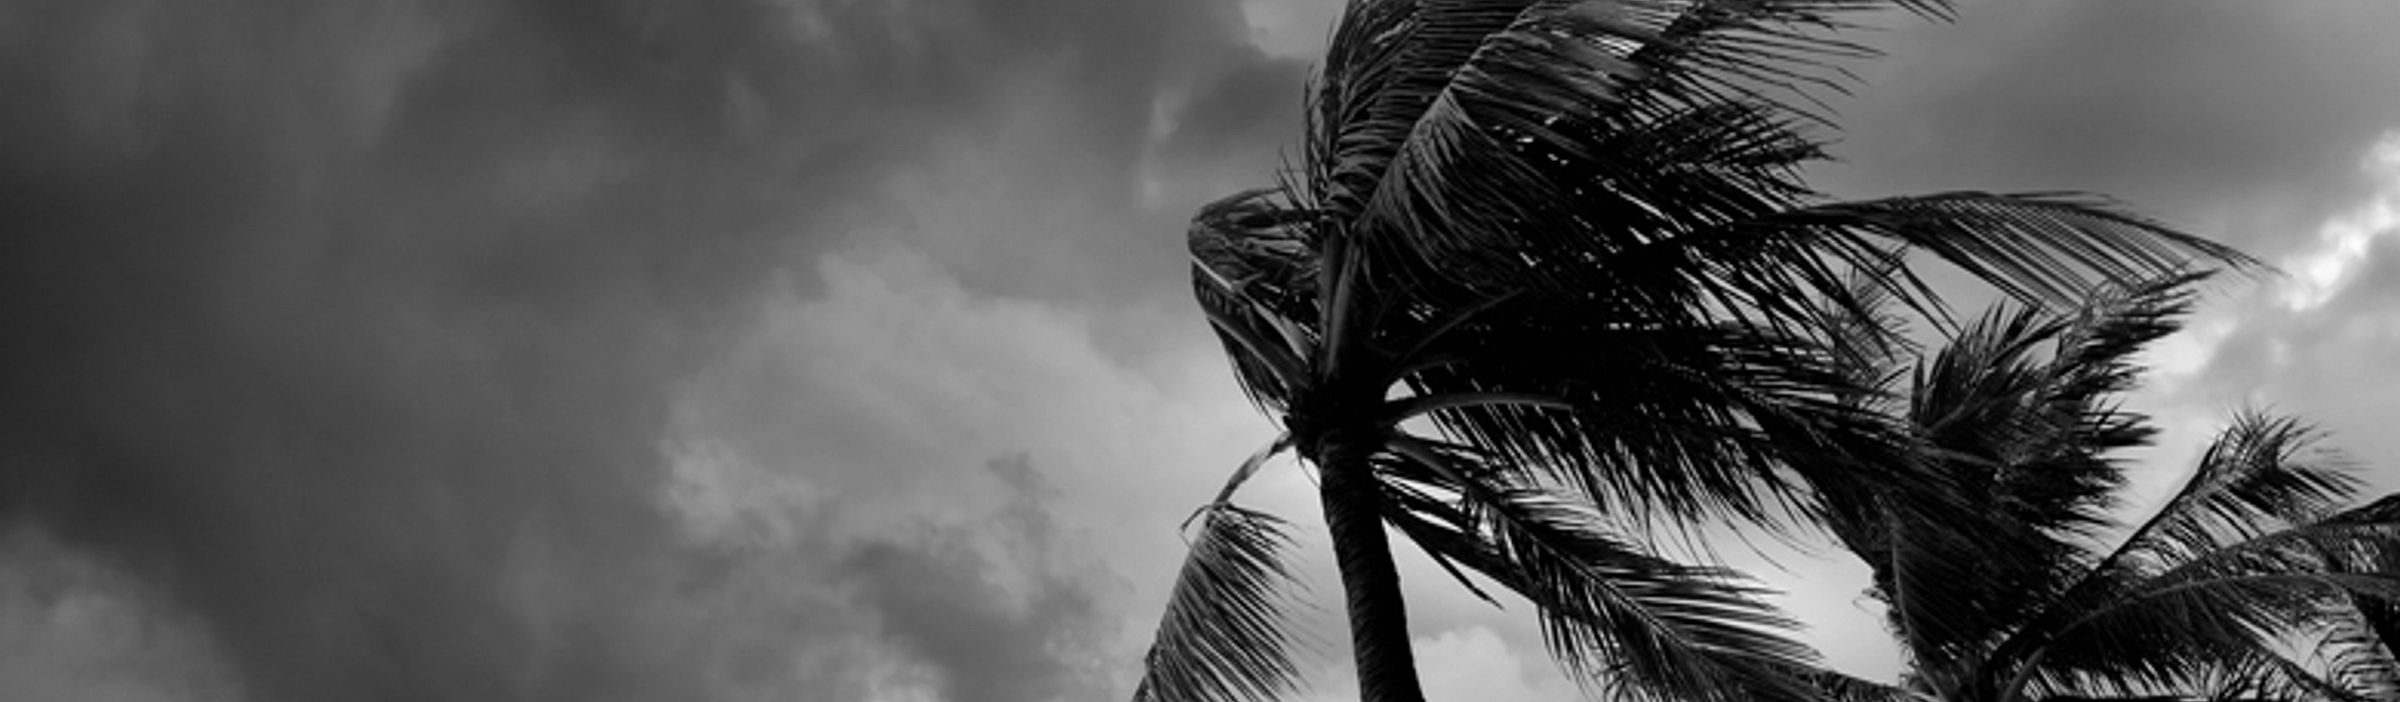 Palm trees being blown in the wind as a storm approaches